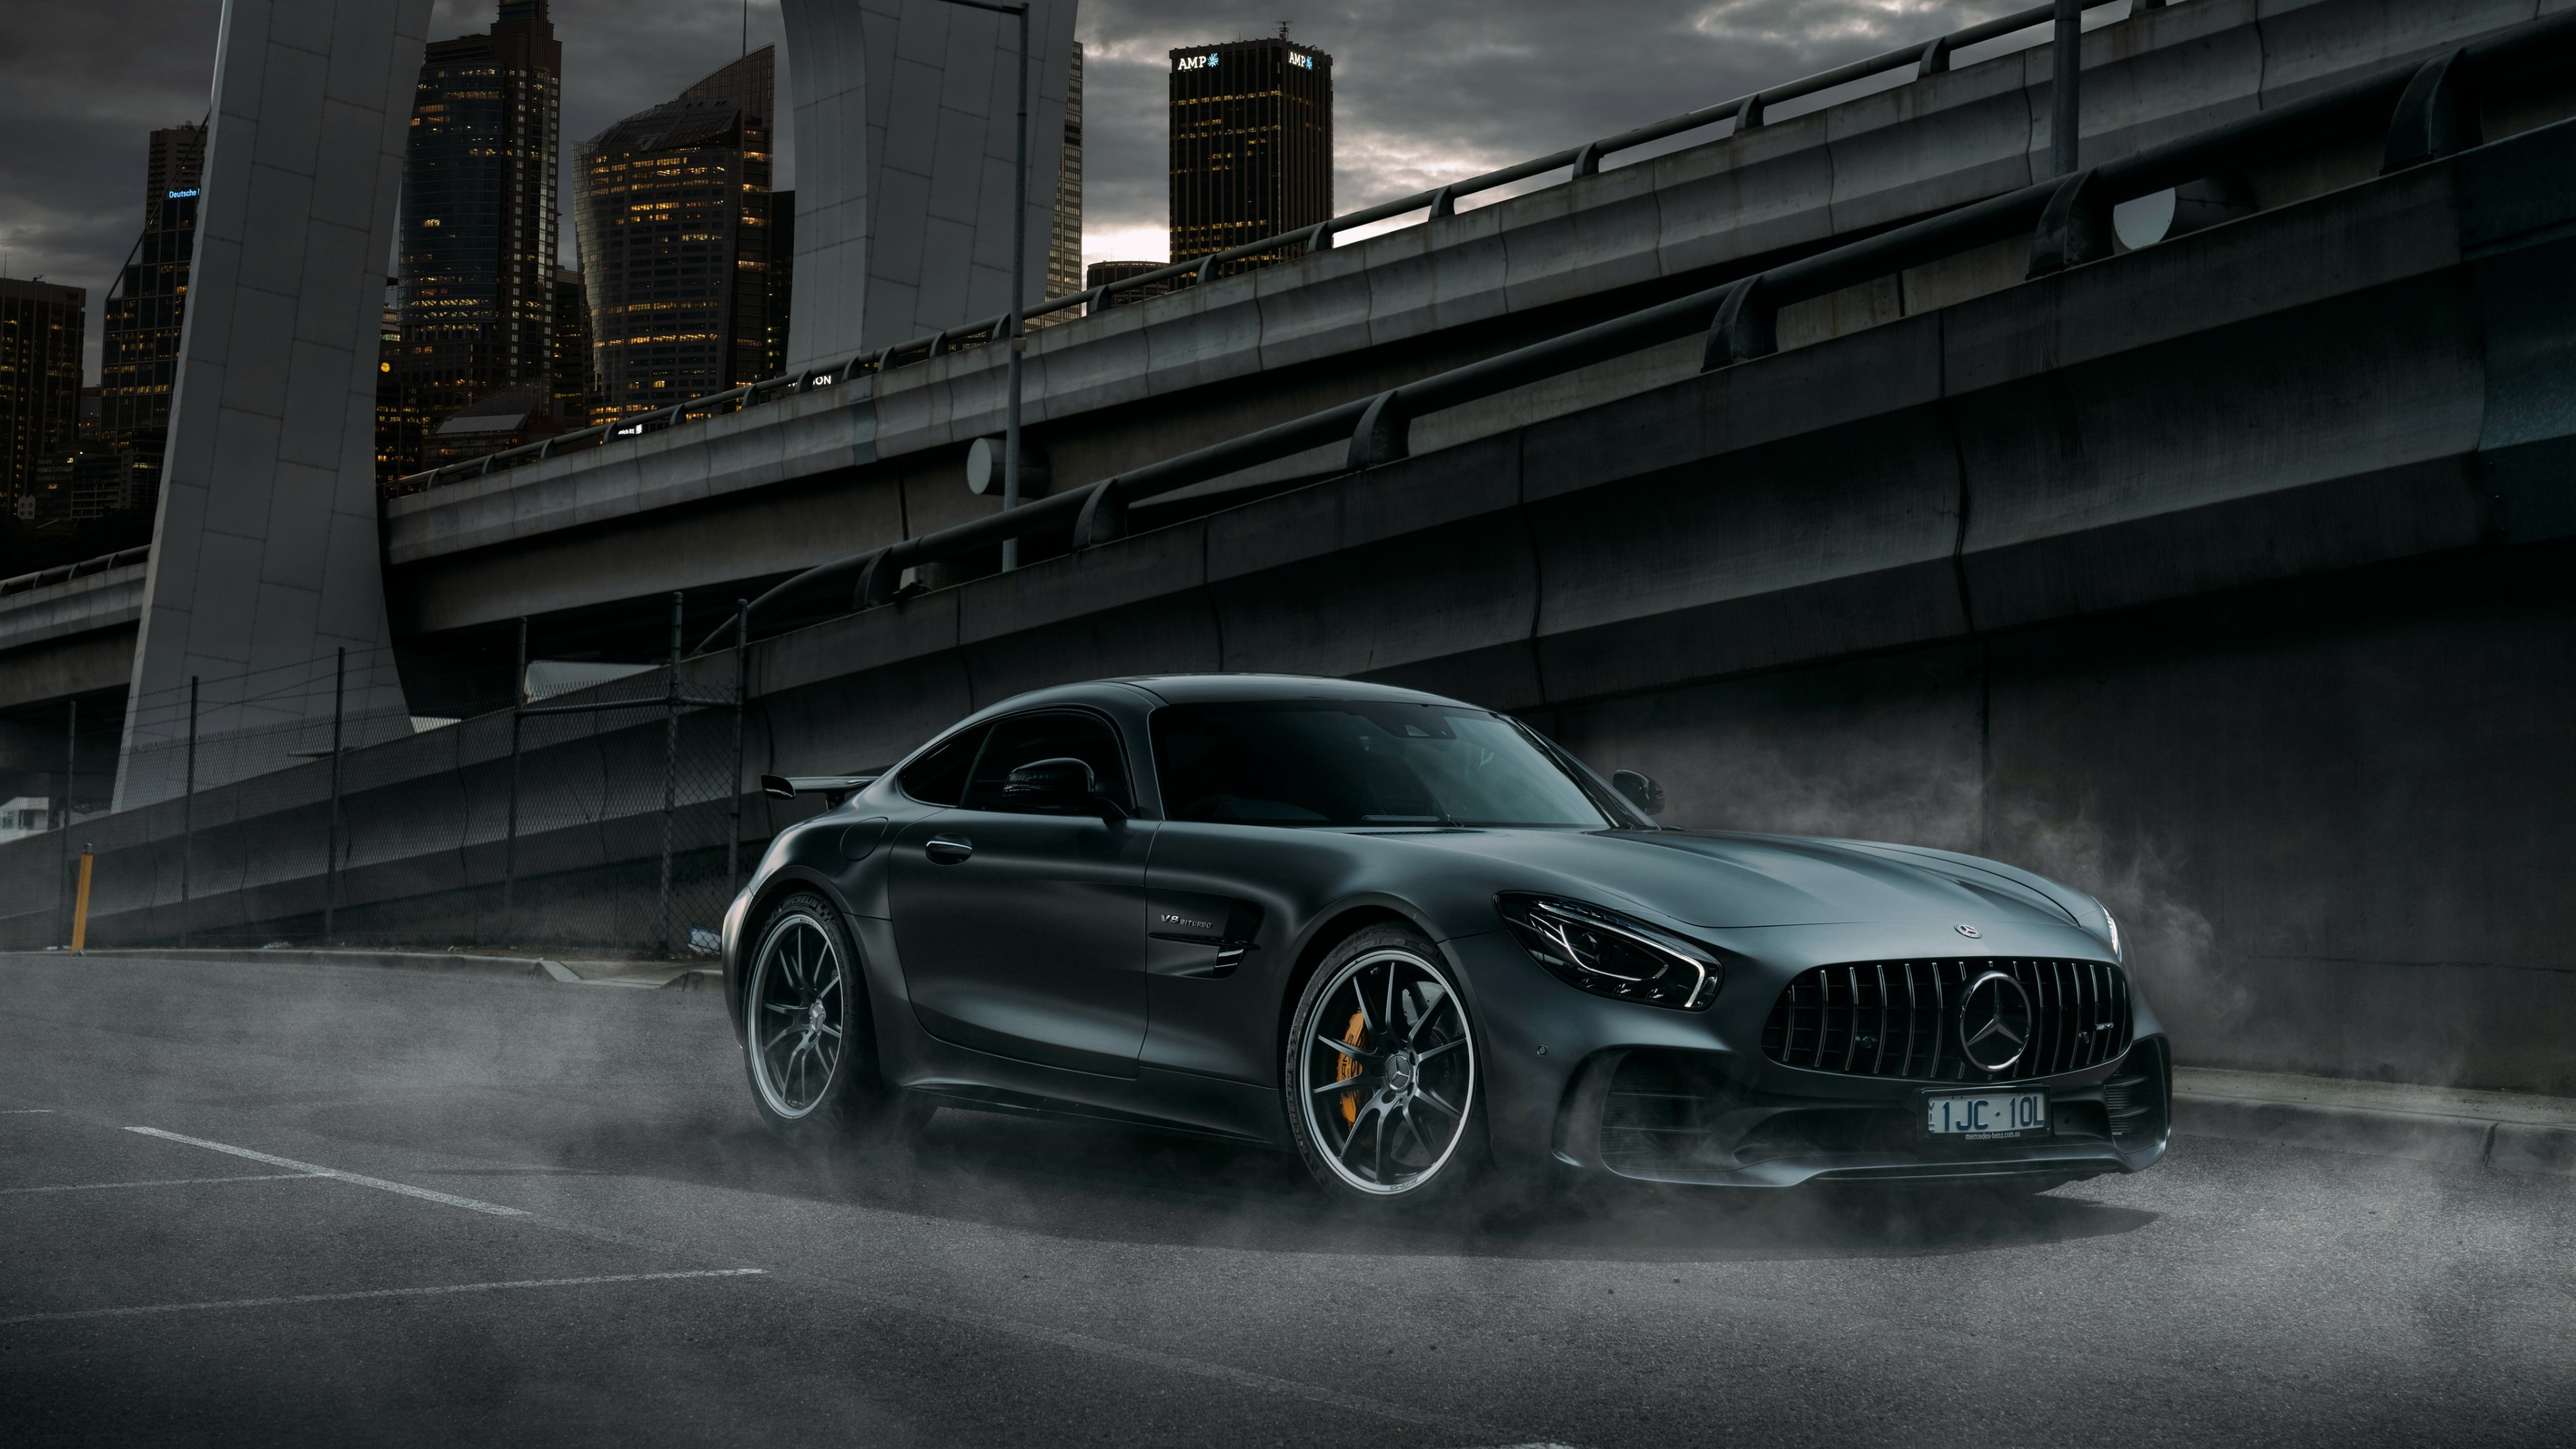 Hd Flat Black Muscle Car Wallpapers Free Download Mercedes Amg Gt And Benz Car Wallpaper For